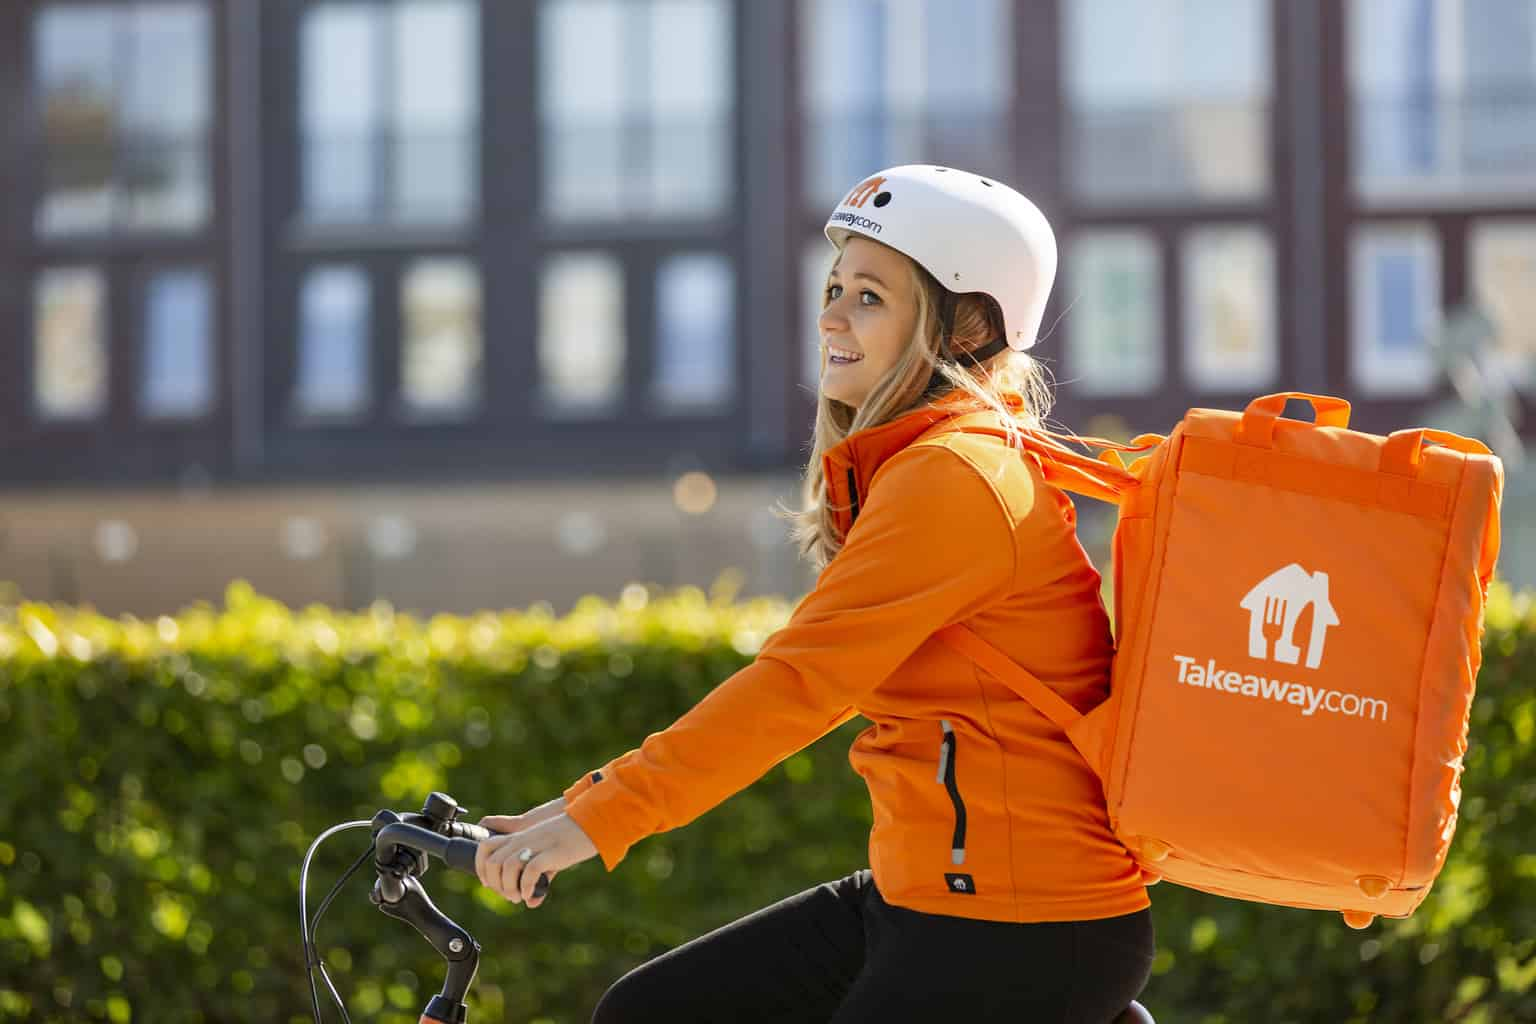 Takeaway.com and Just Eat merge to become a global superpower in on-demand food delivery (Photo: Takeaway.com)